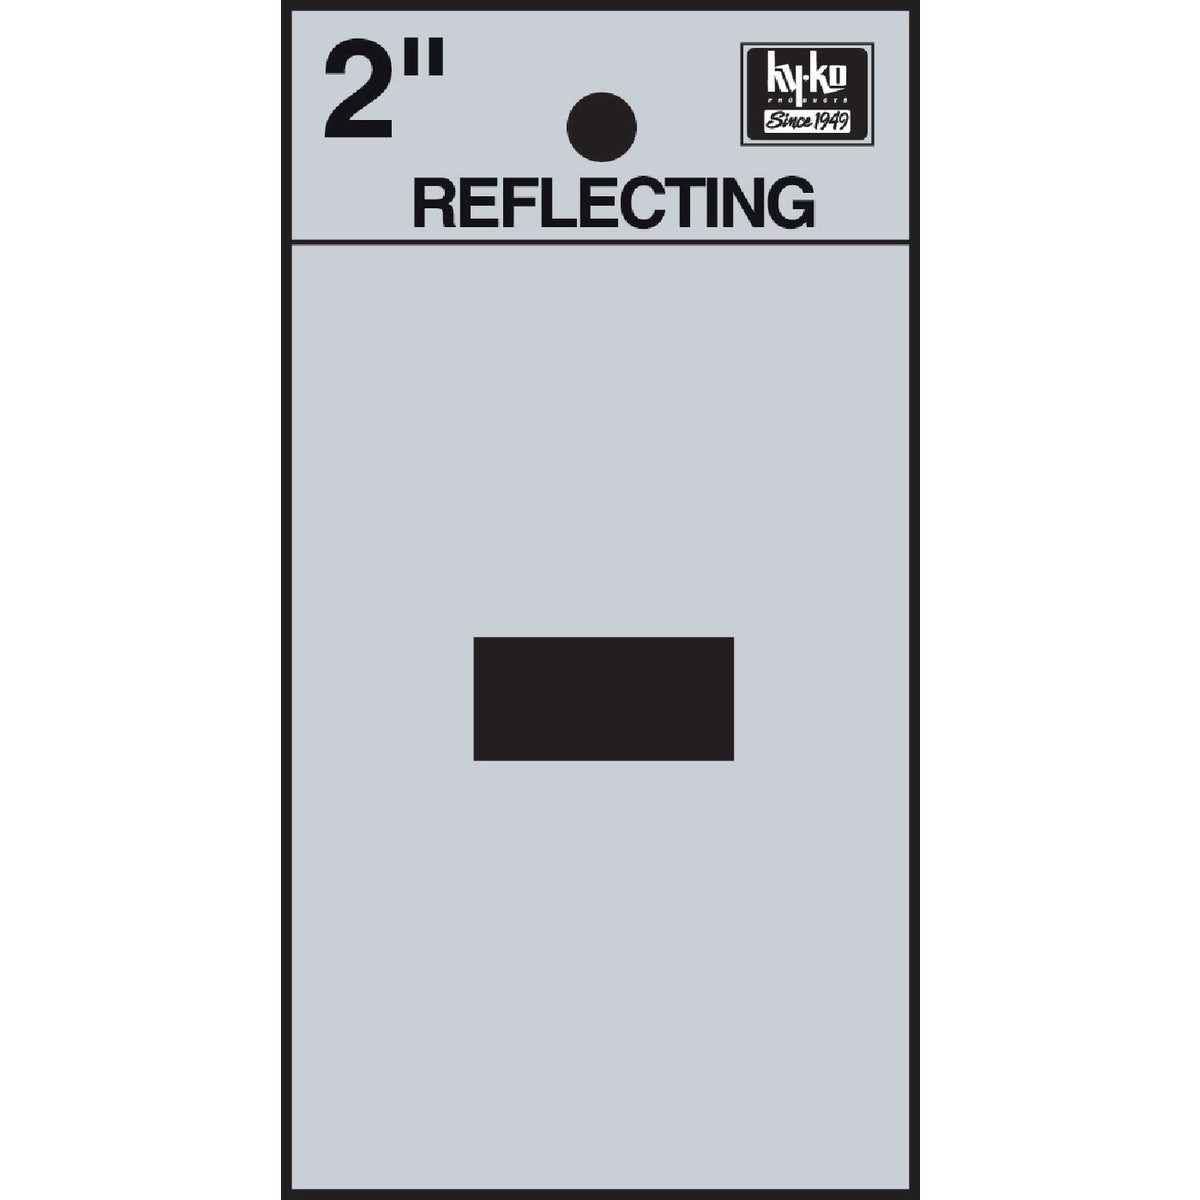 "2"" REFLECT HYPHEN - RV-25/- by Hy Ko Prods Co"